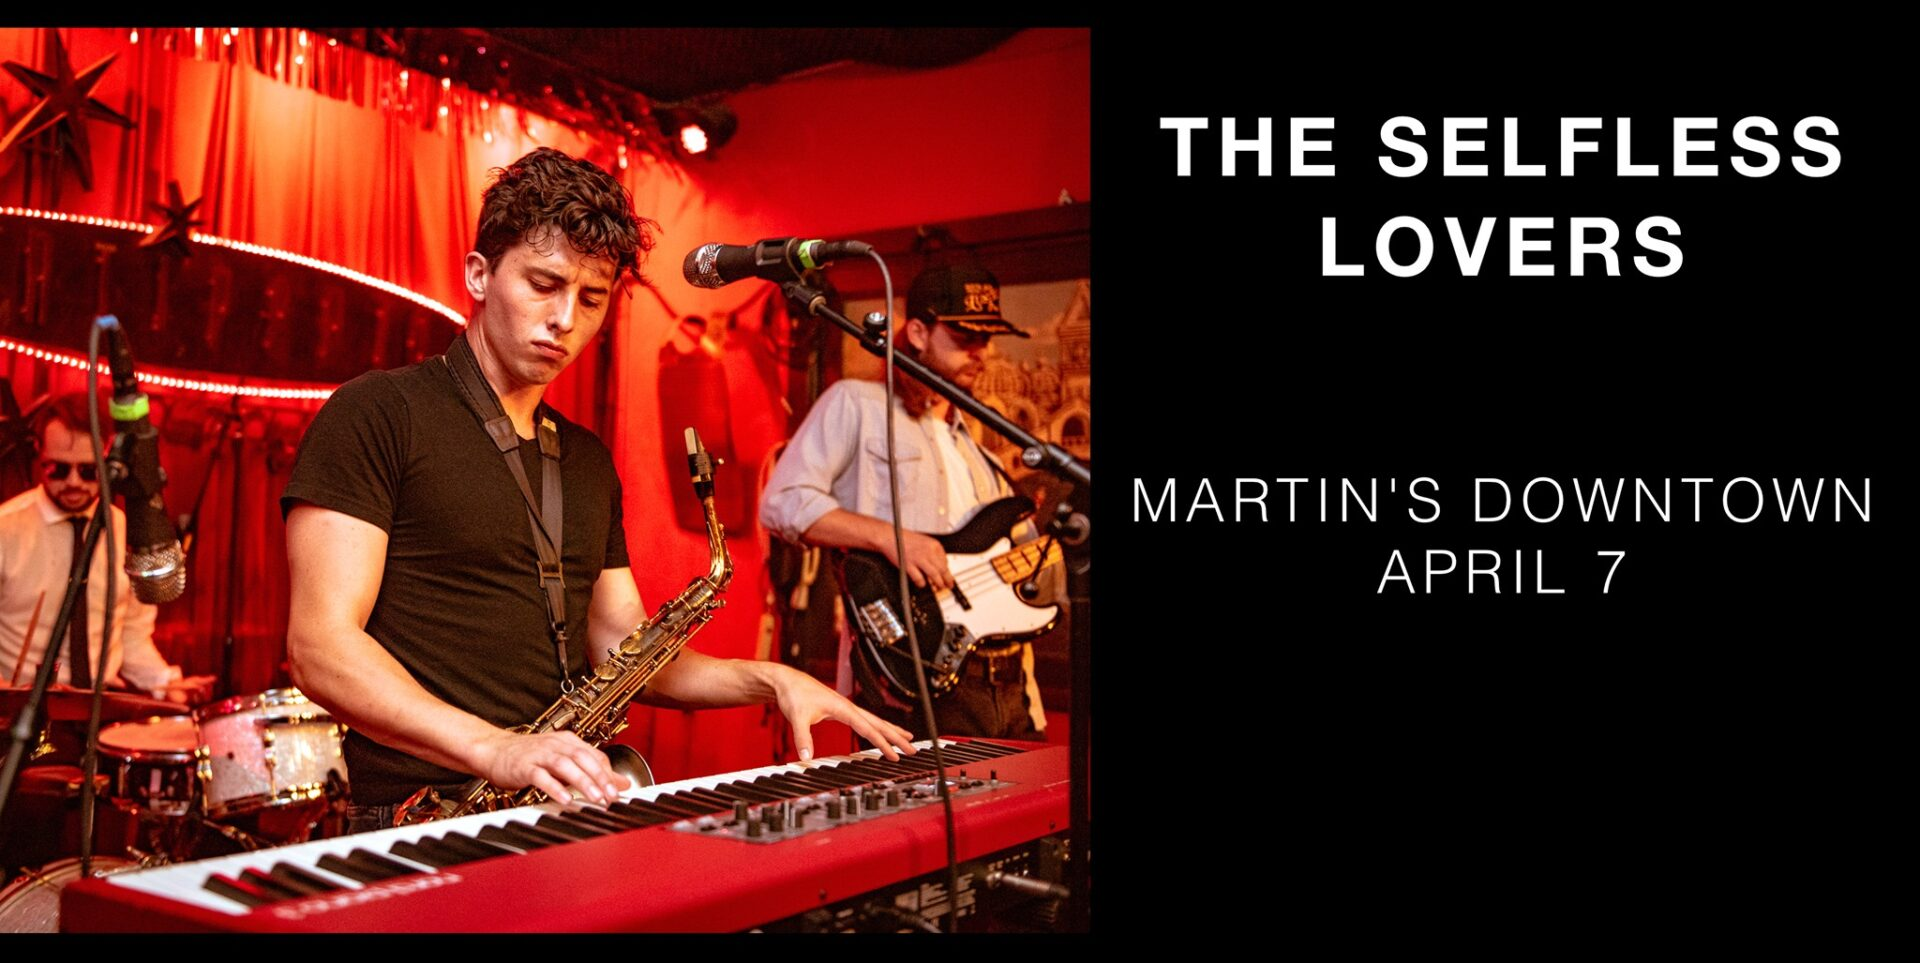 The Selfless Lovers at Martin's Downtown